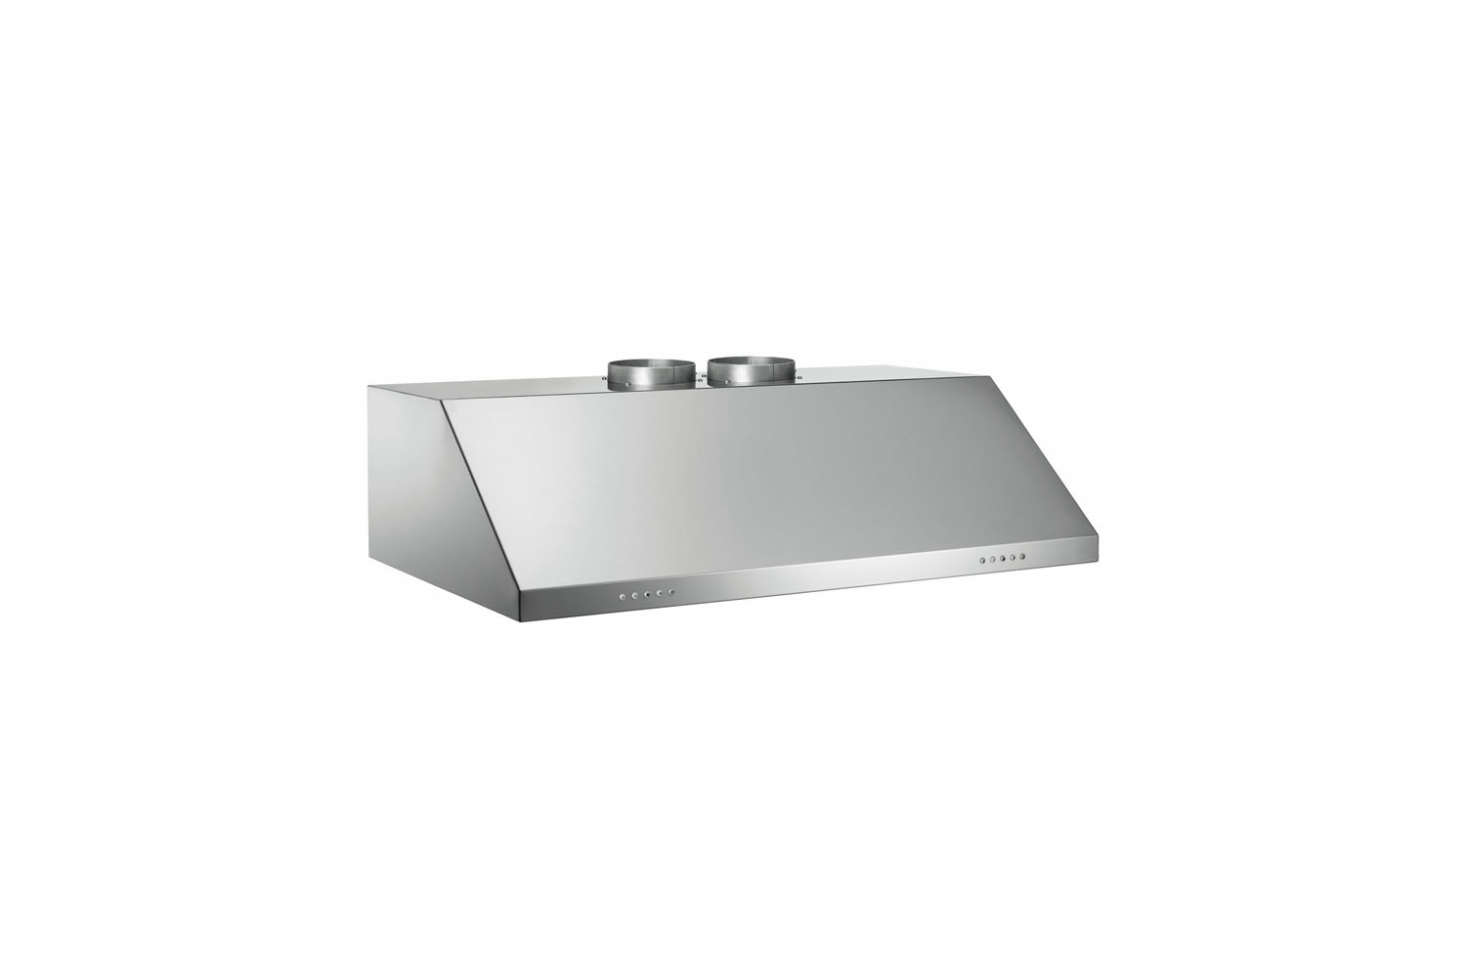 The Bertazzoni Professional Series 2 Motor Range Hood Is $1,824 At US  Appliance For The